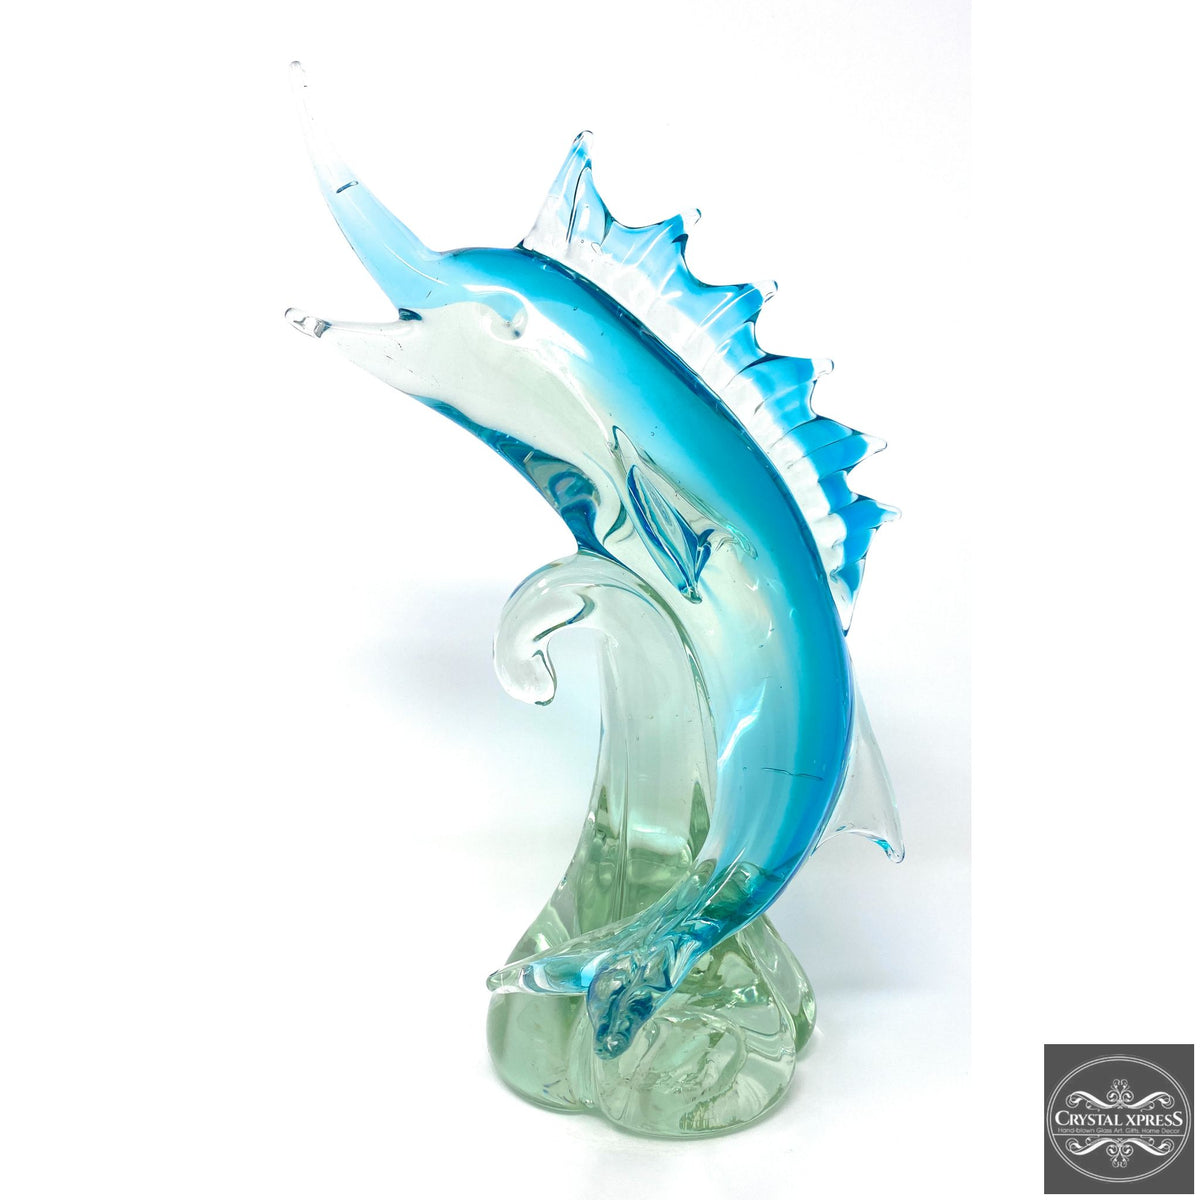 "13.5"" Tall One of a Kind Limited Quantity Art Hand Blown Glass Swordfish SculptureCrystal Xpress"